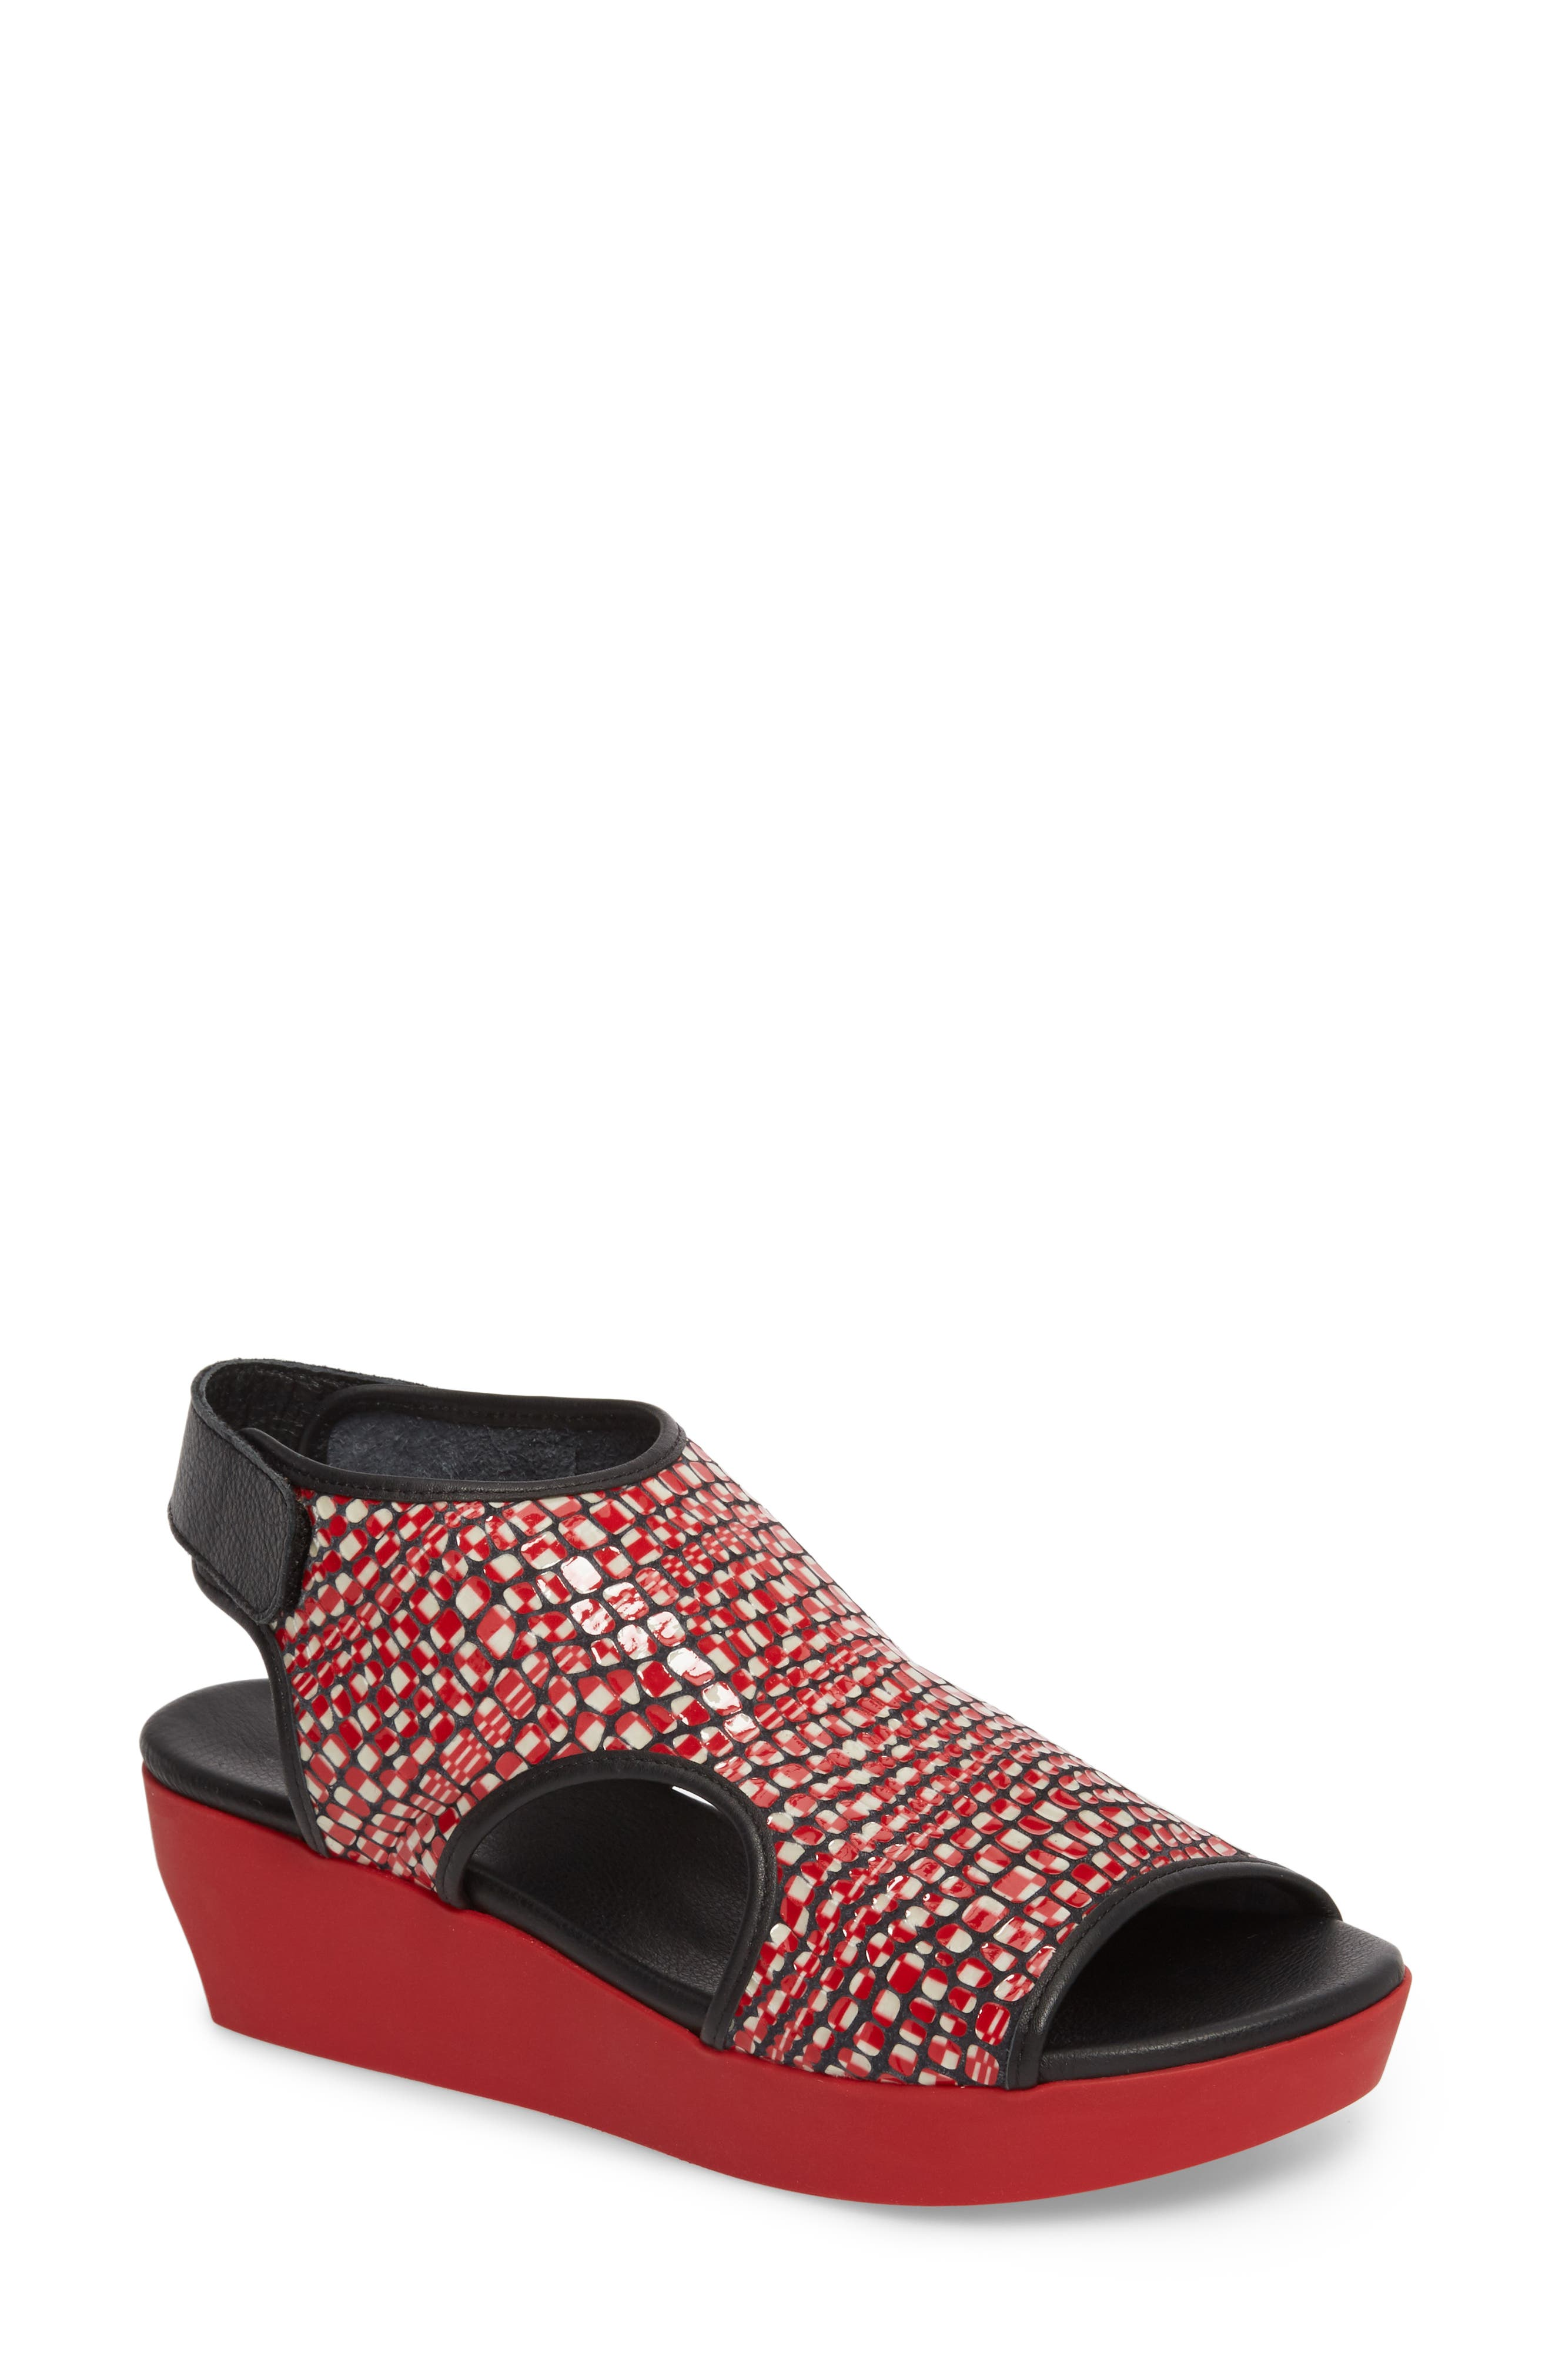 Naka Popa Wedge Sandal,                         Main,                         color, Noir/ Rosso Leather